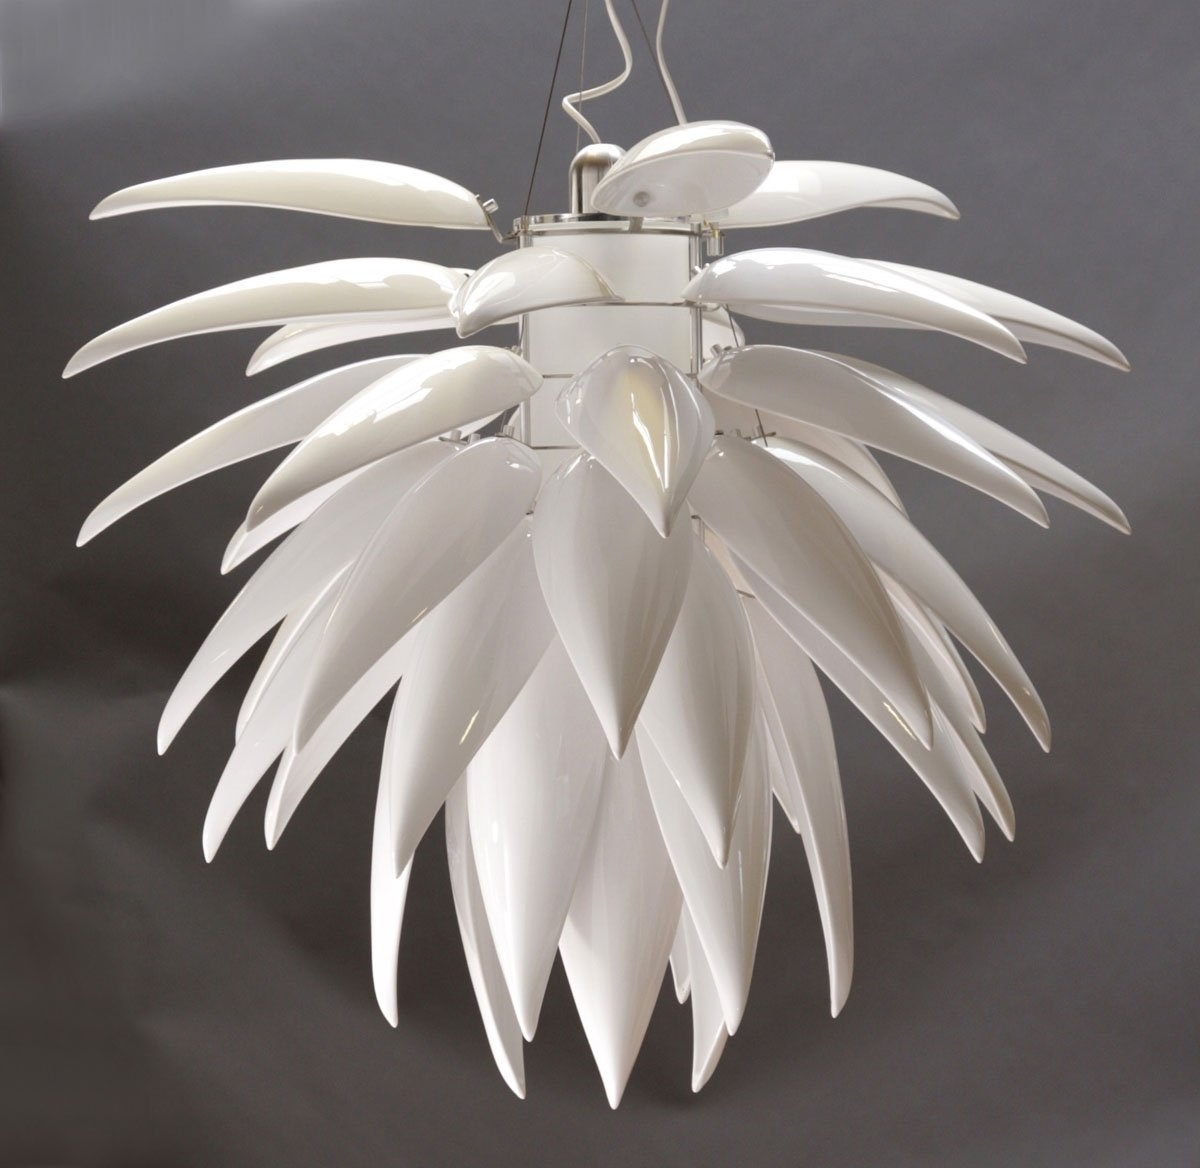 Modern White Chandelier Throughout Well Known Contemporary Lighting Chandeliers White : Antique Contemporary (View 13 of 20)